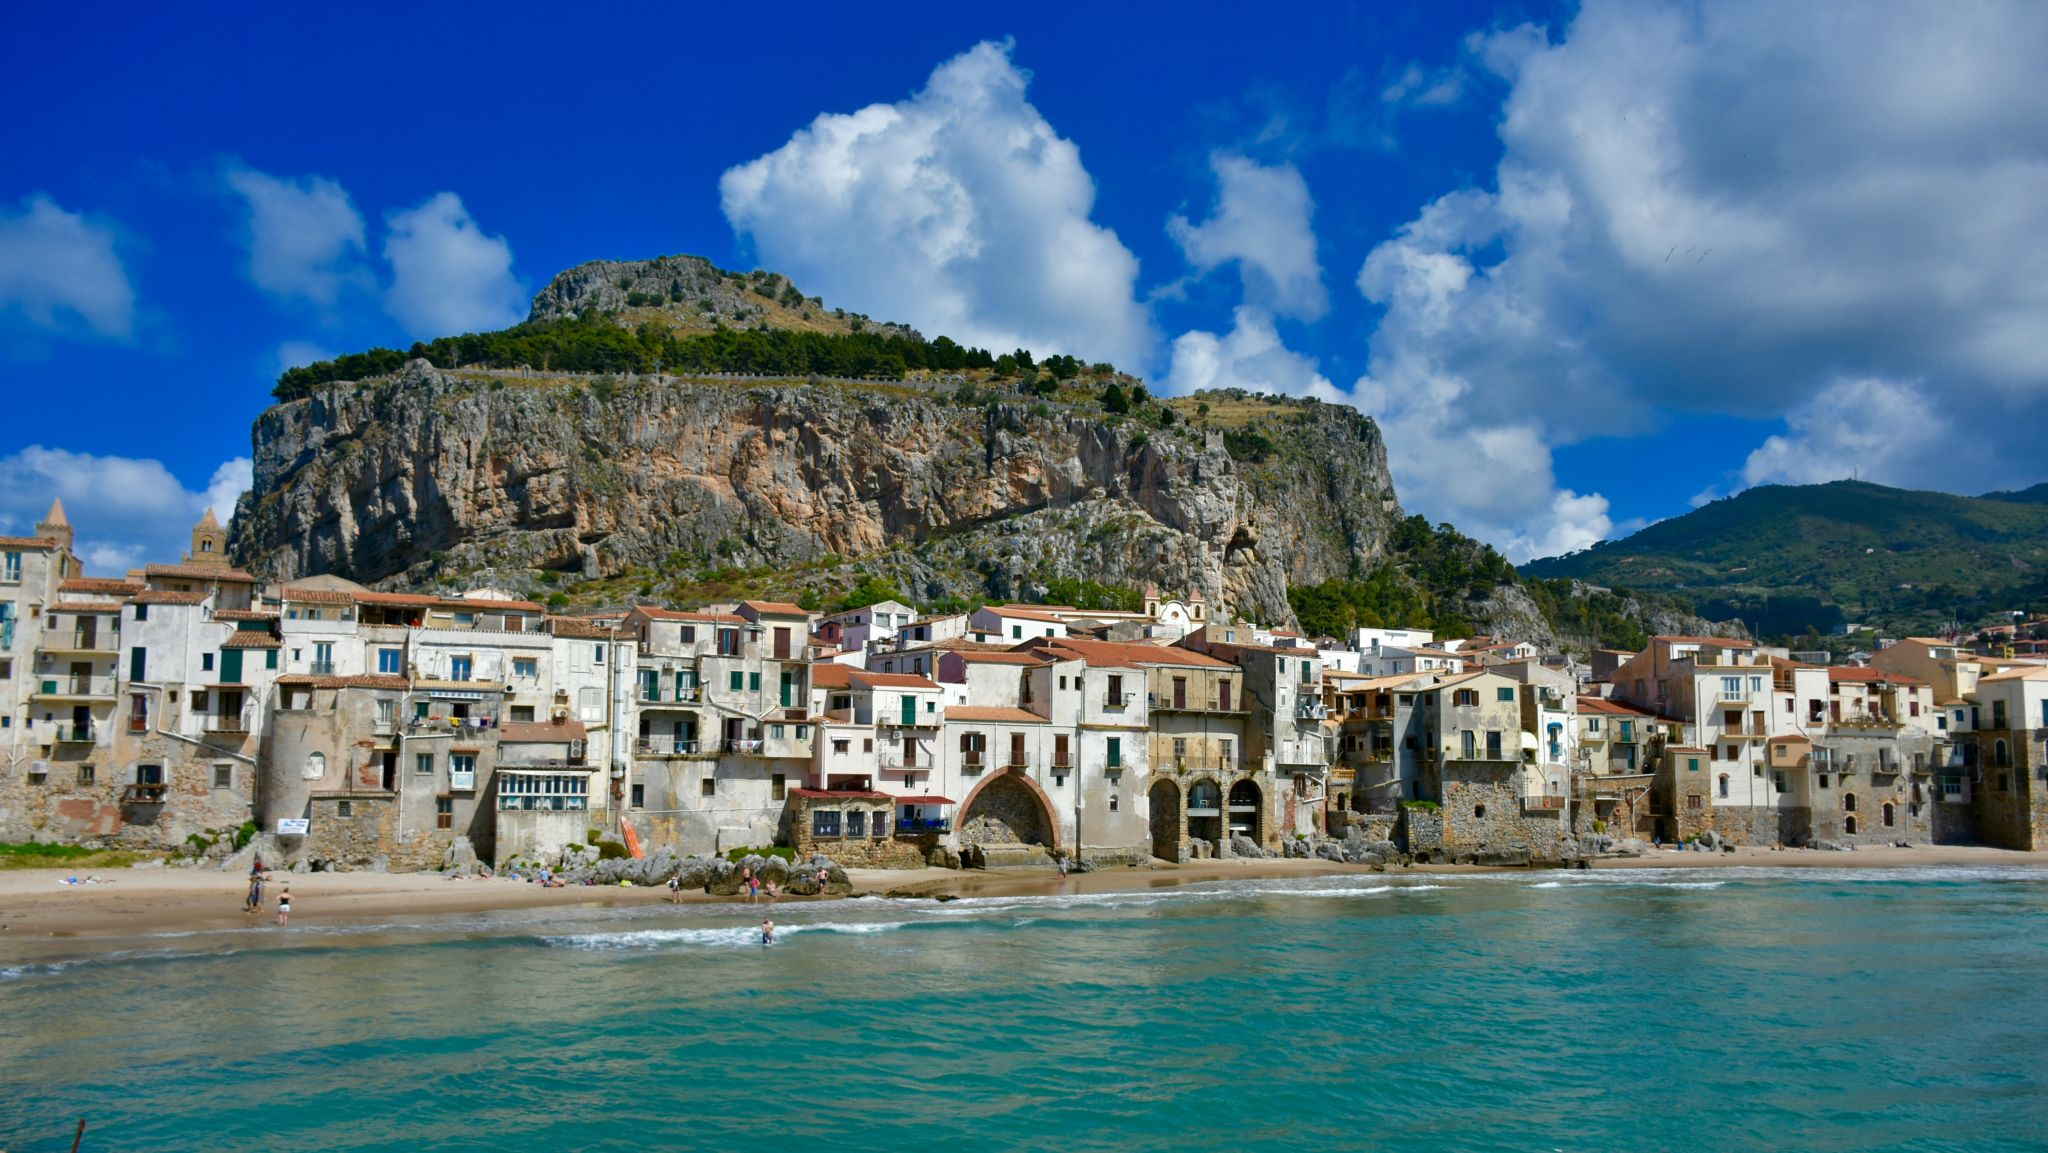 Cefalu's Waterfront, Italy